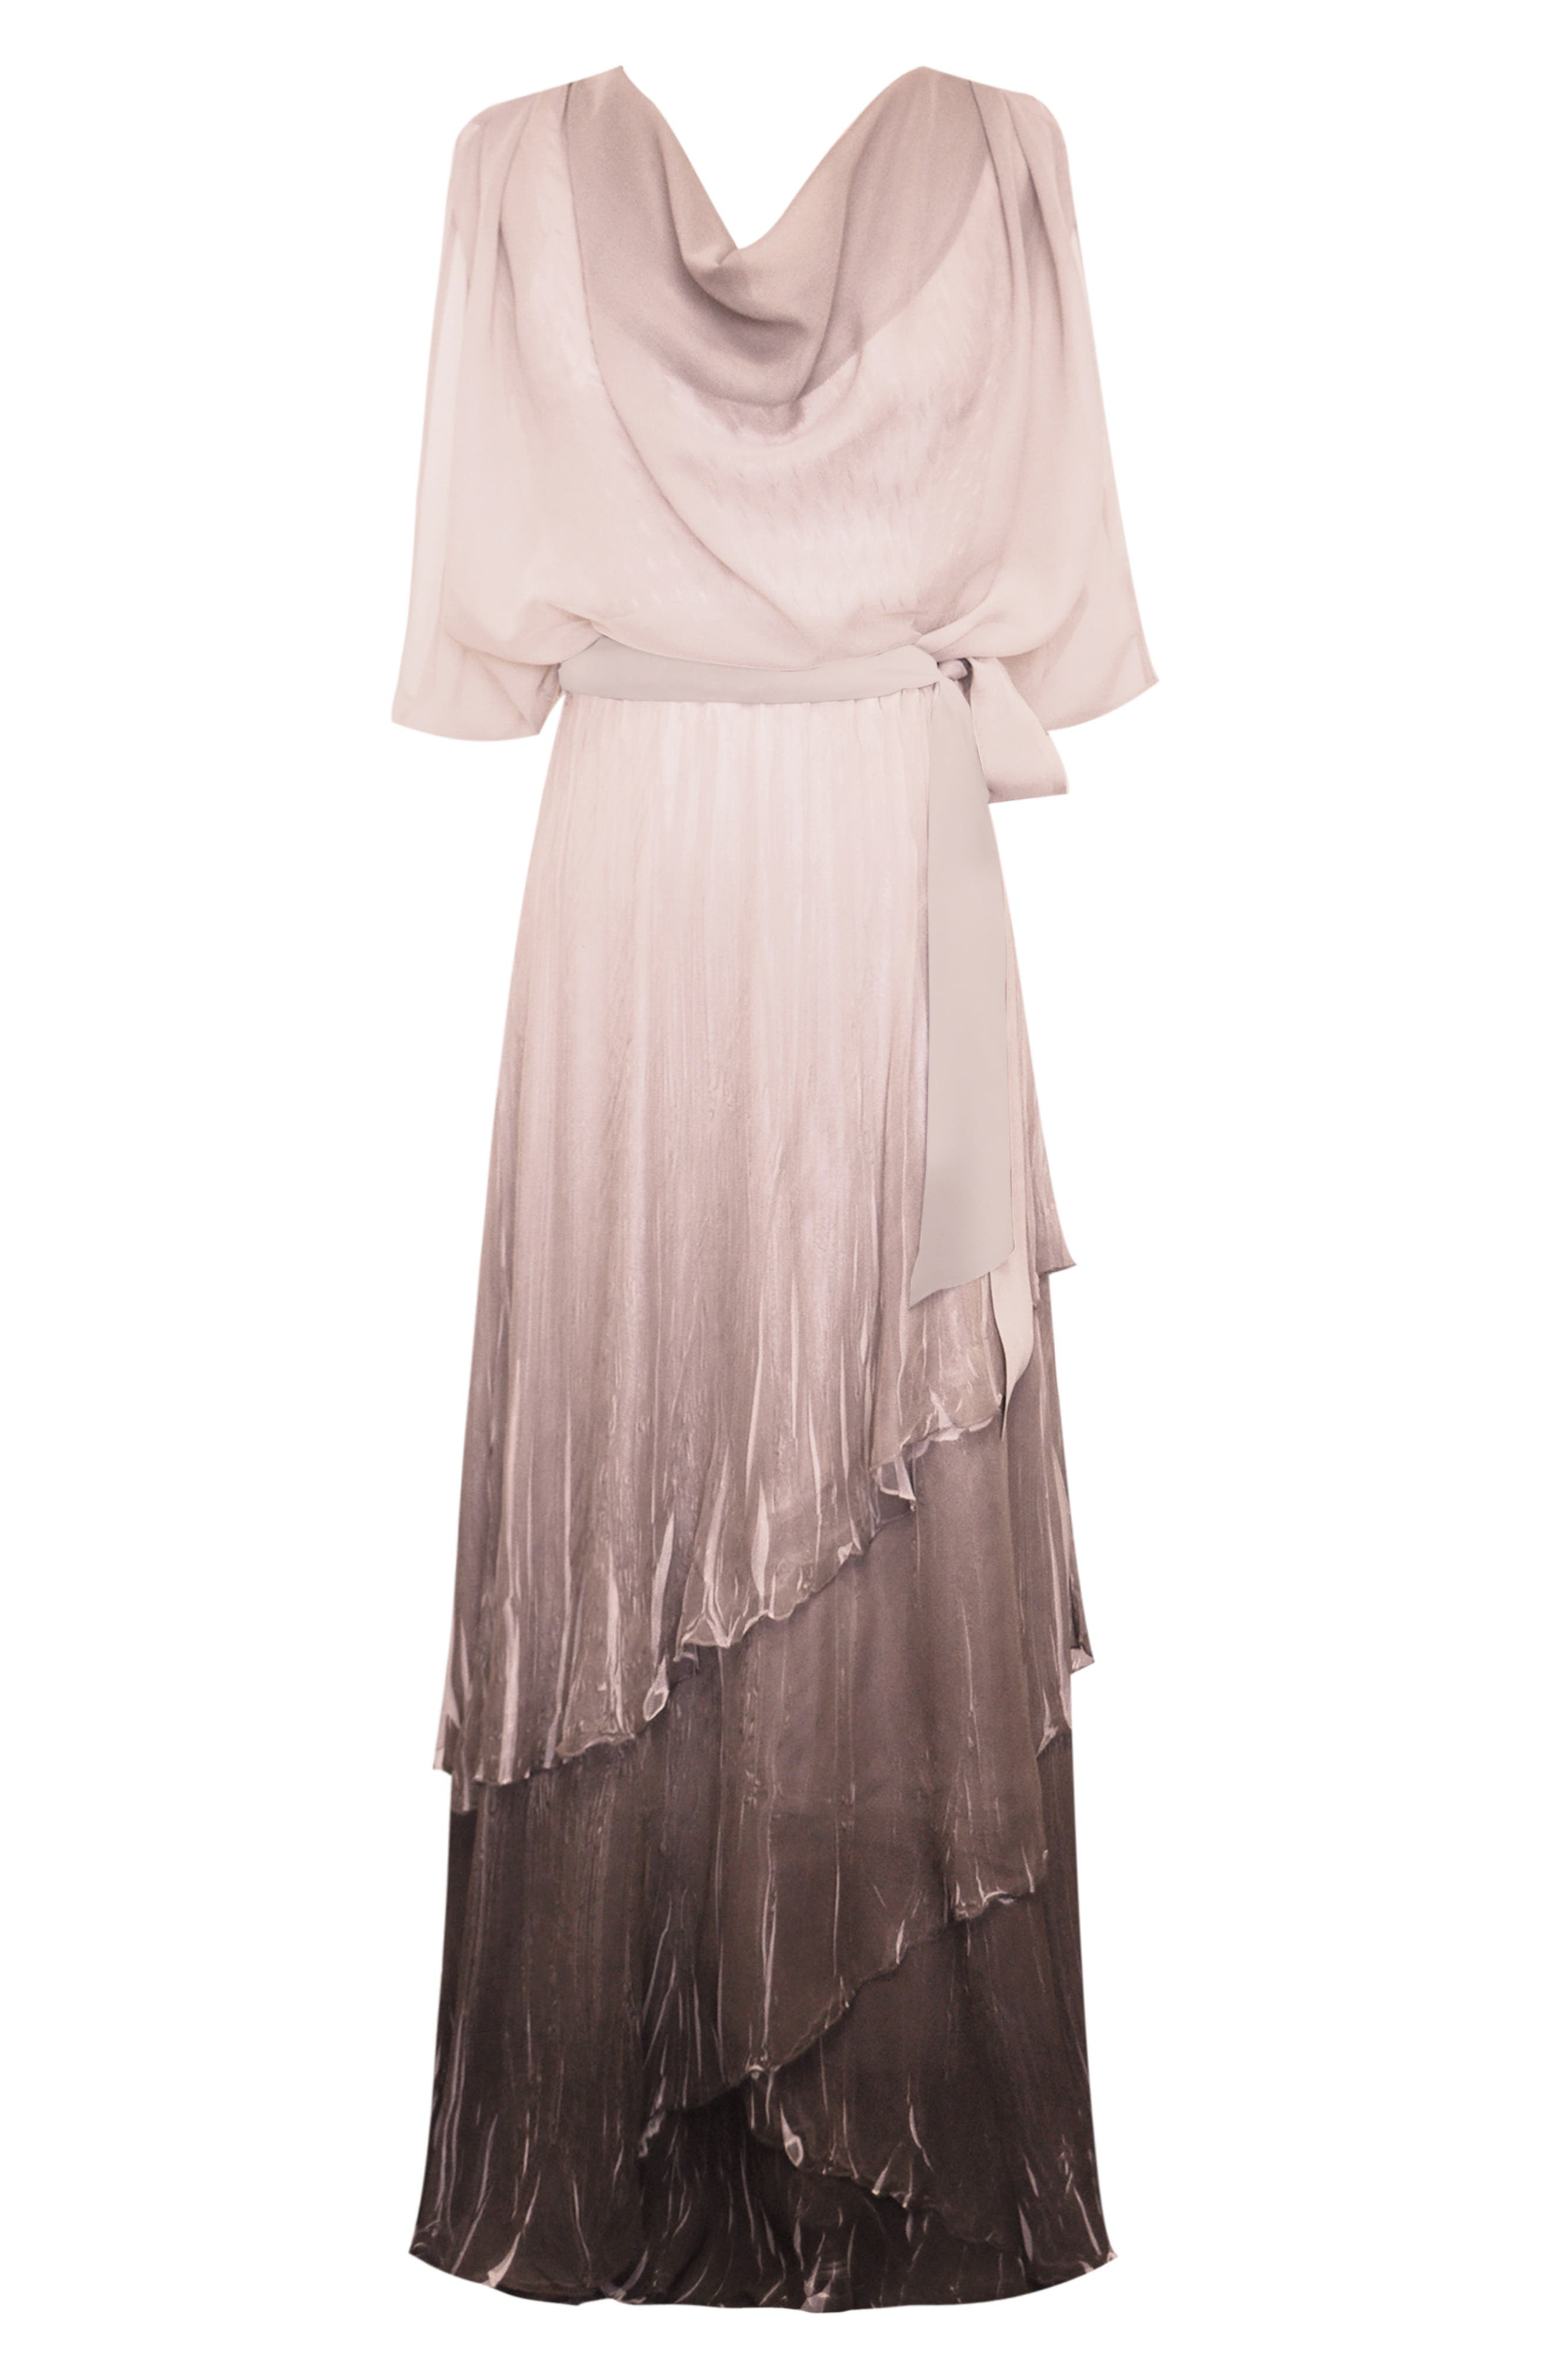 KOMAROV, Drape Chiffon Gown, Alternate thumbnail 4, color, 250